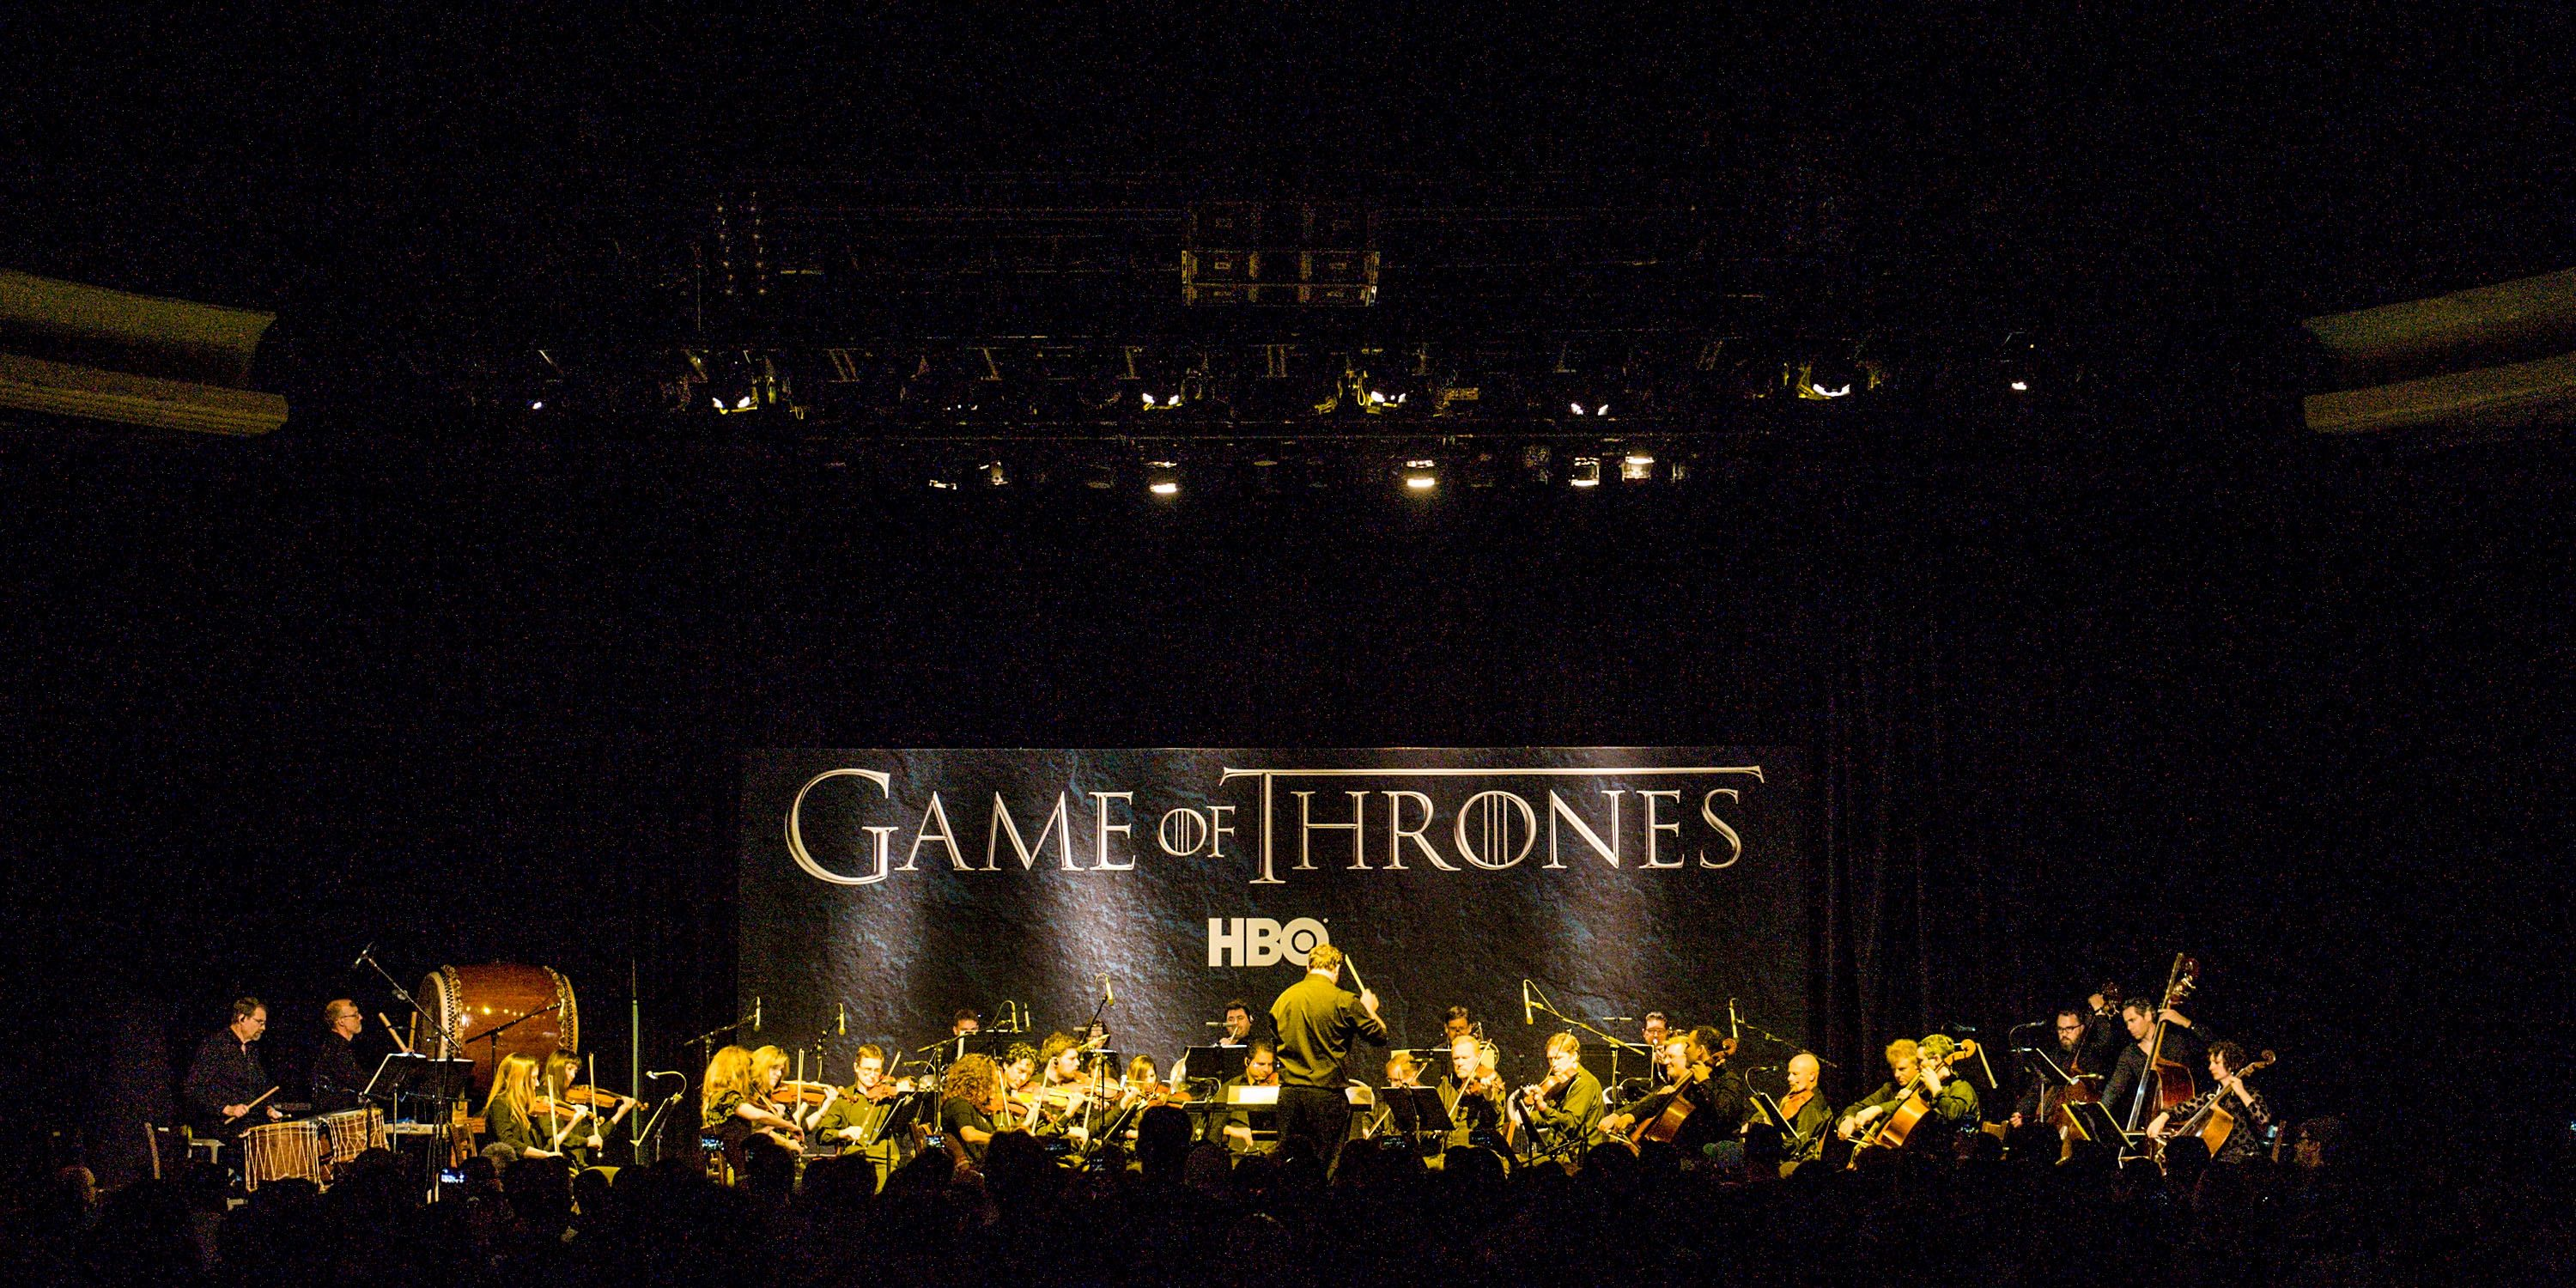 Game of Thrones live concert experience at Hollywood Palladium